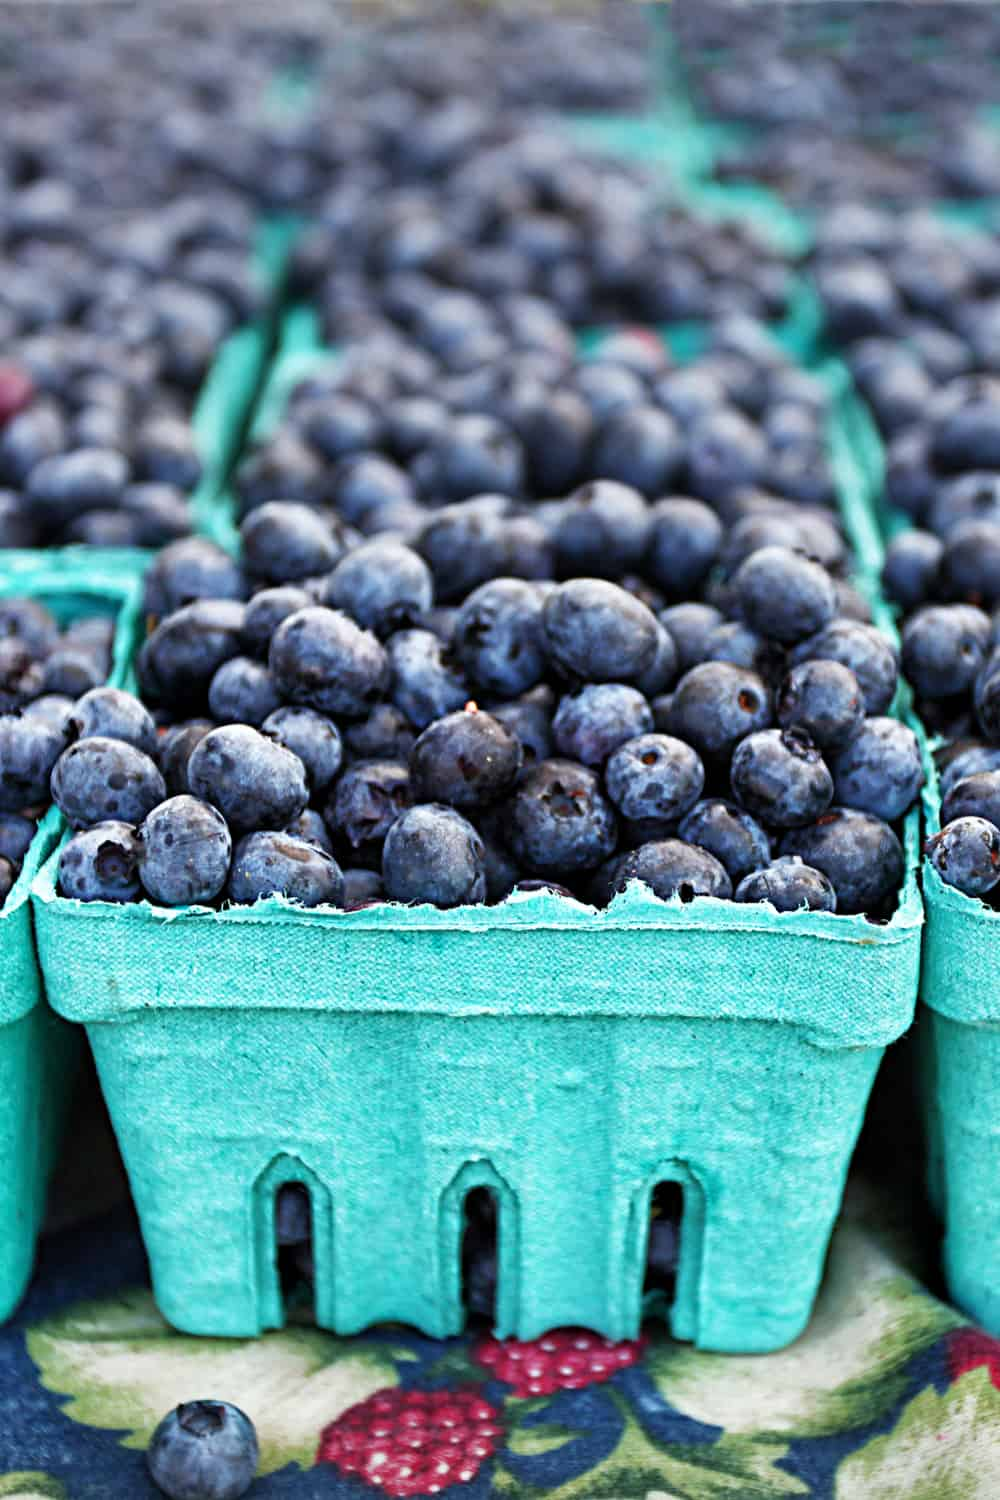 7 Tips to Tell if Blueberries Has Gone Bad